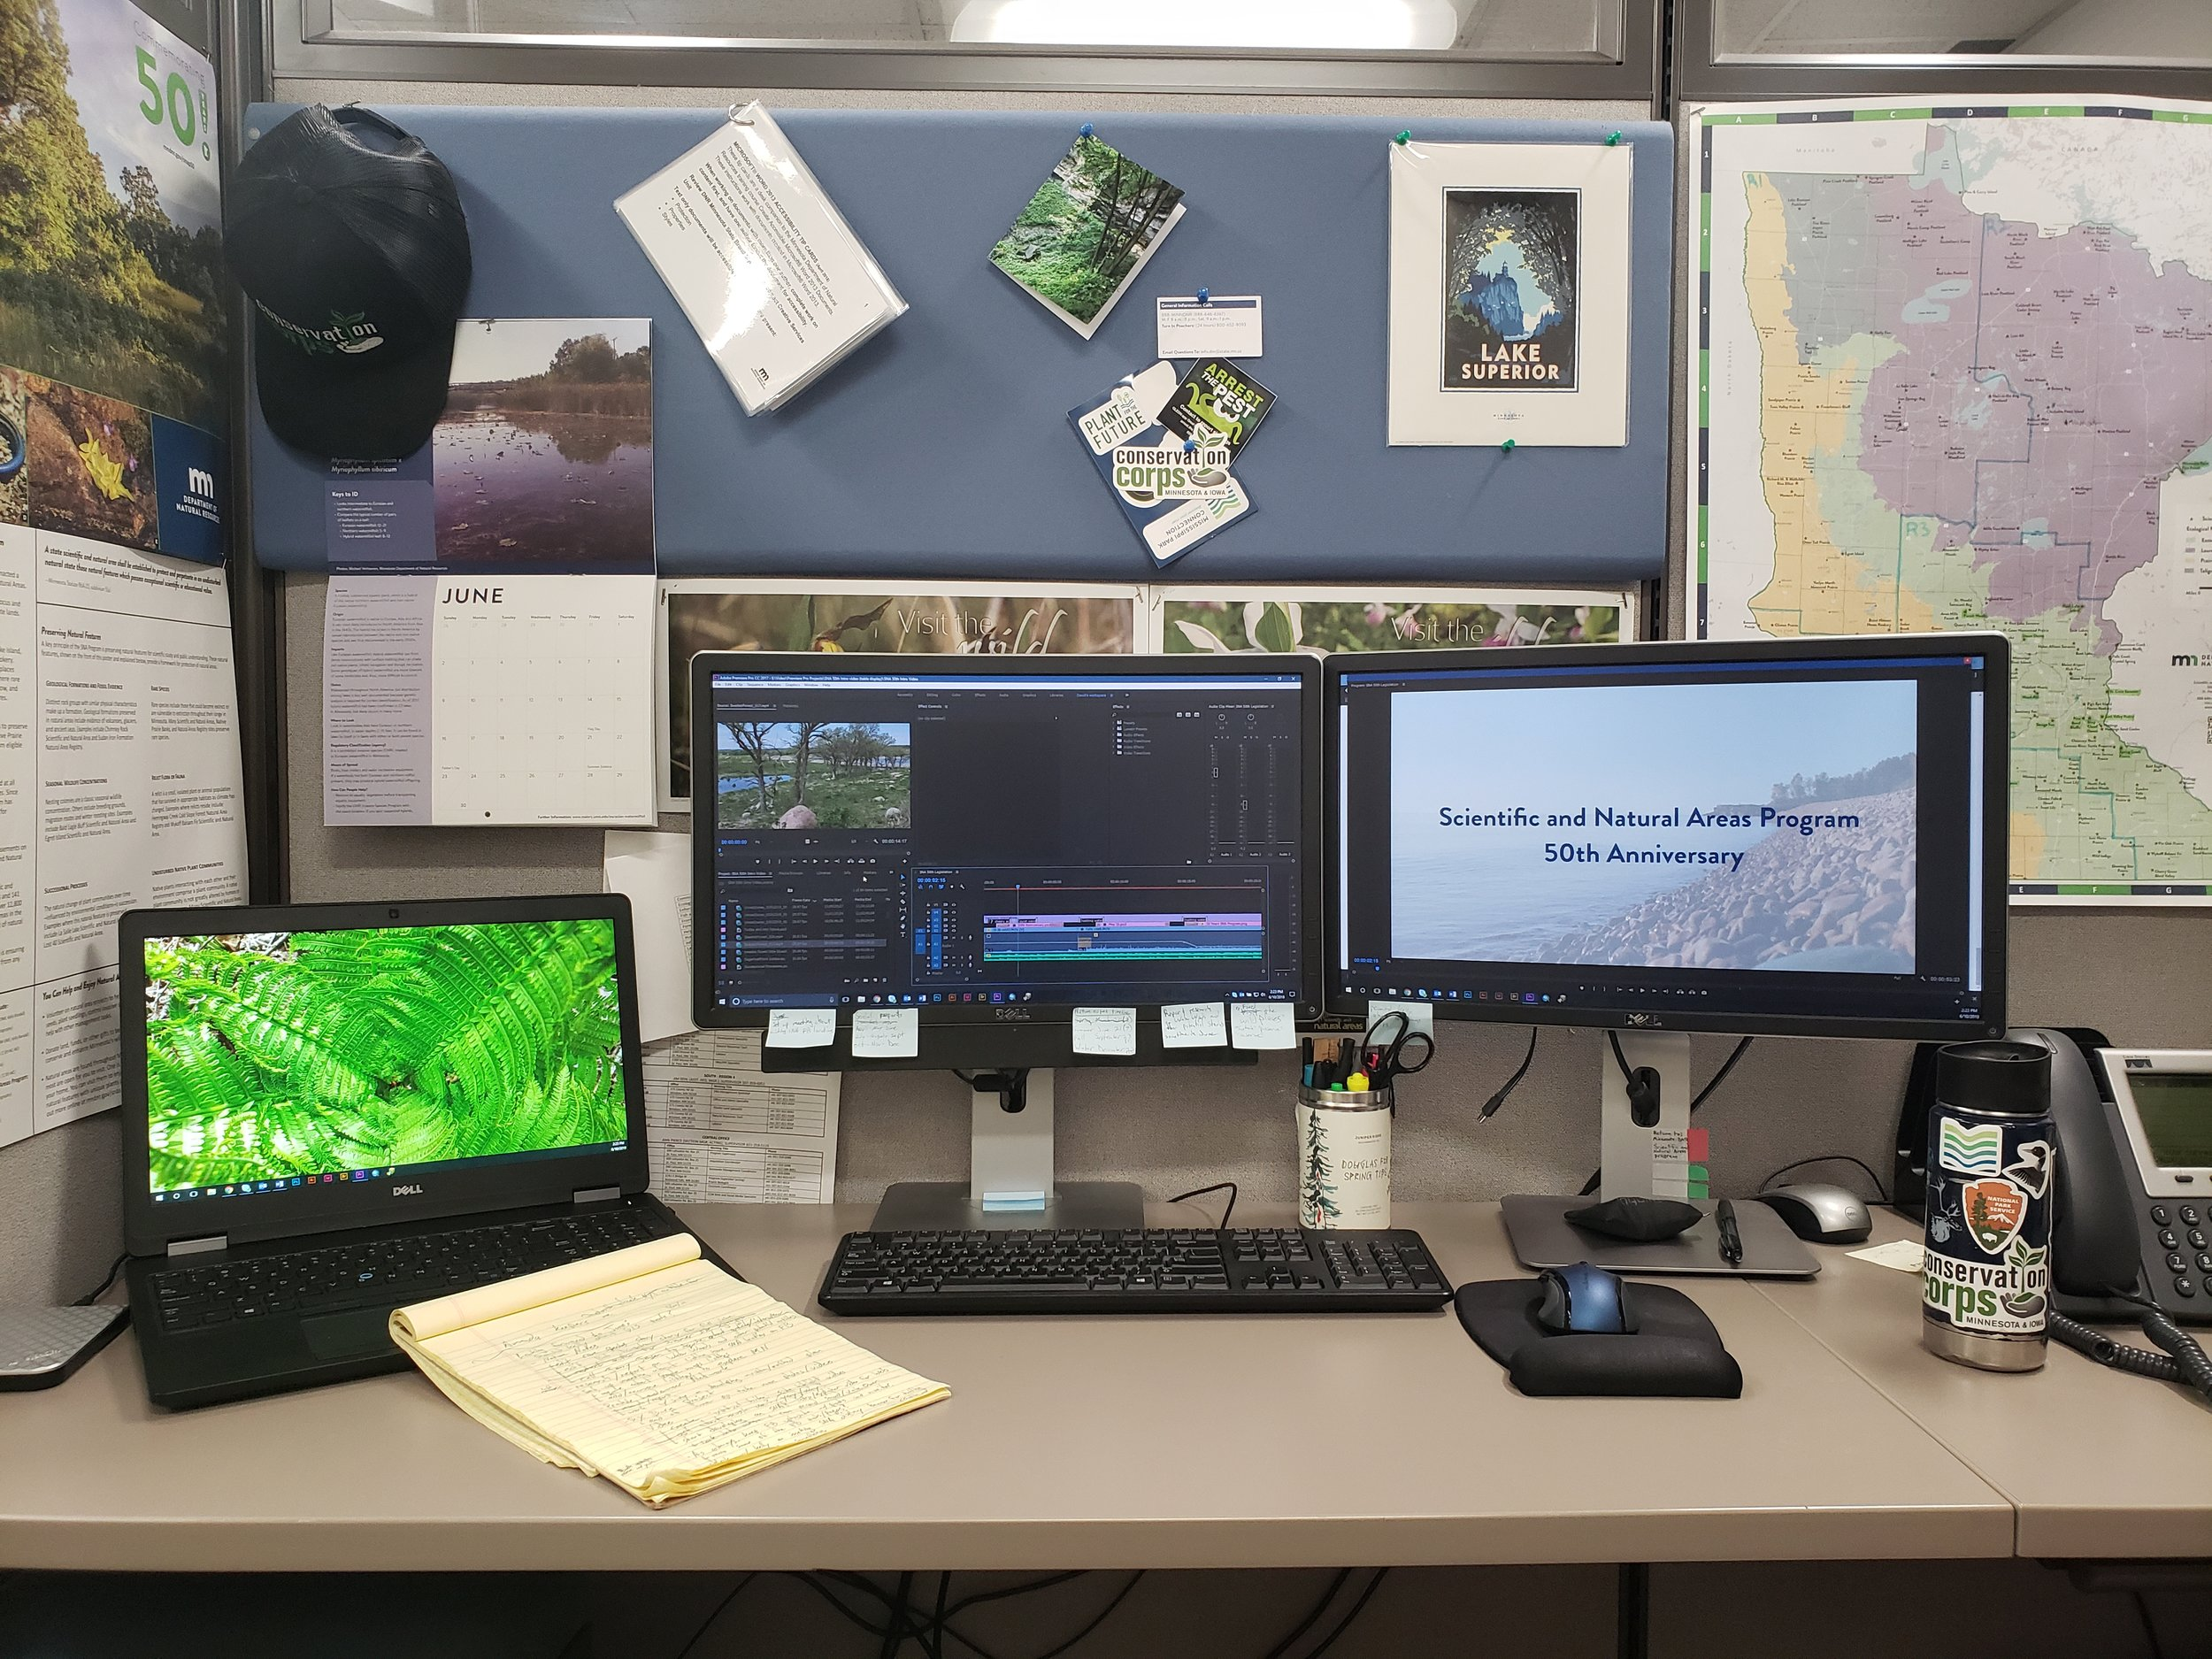 My desk while I'm working on a video about the Scientific and Natural Areas.